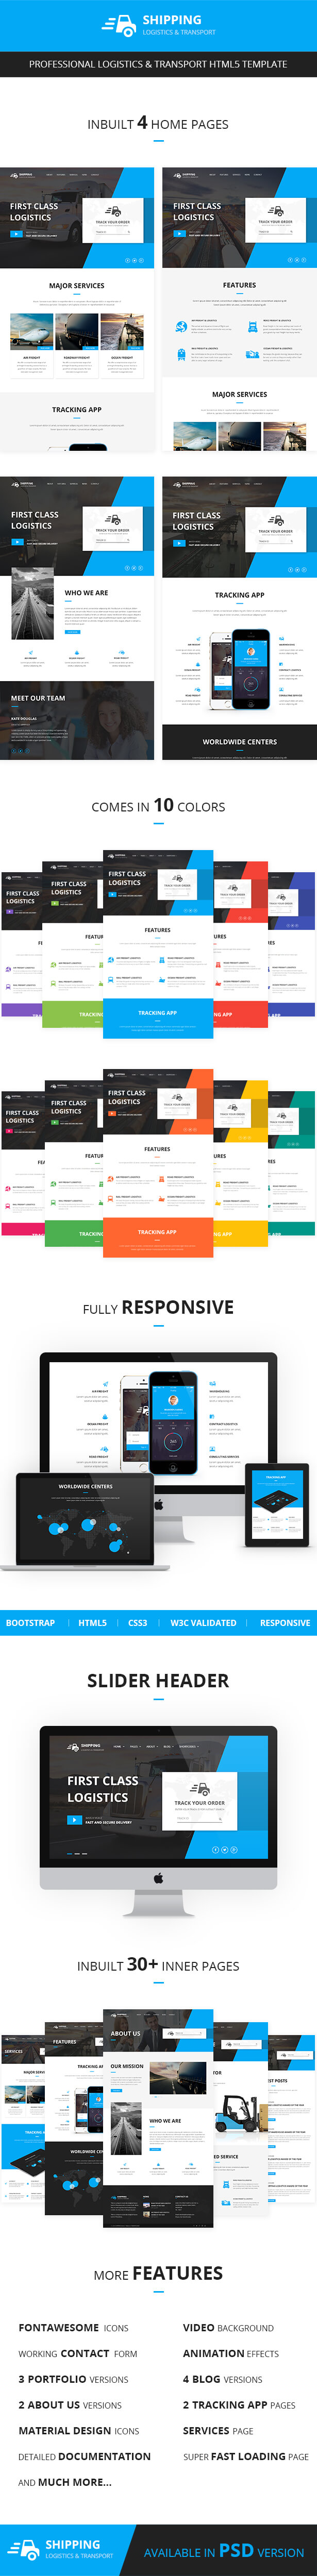 Shipping - Logistics & Transport HTML Template - 1